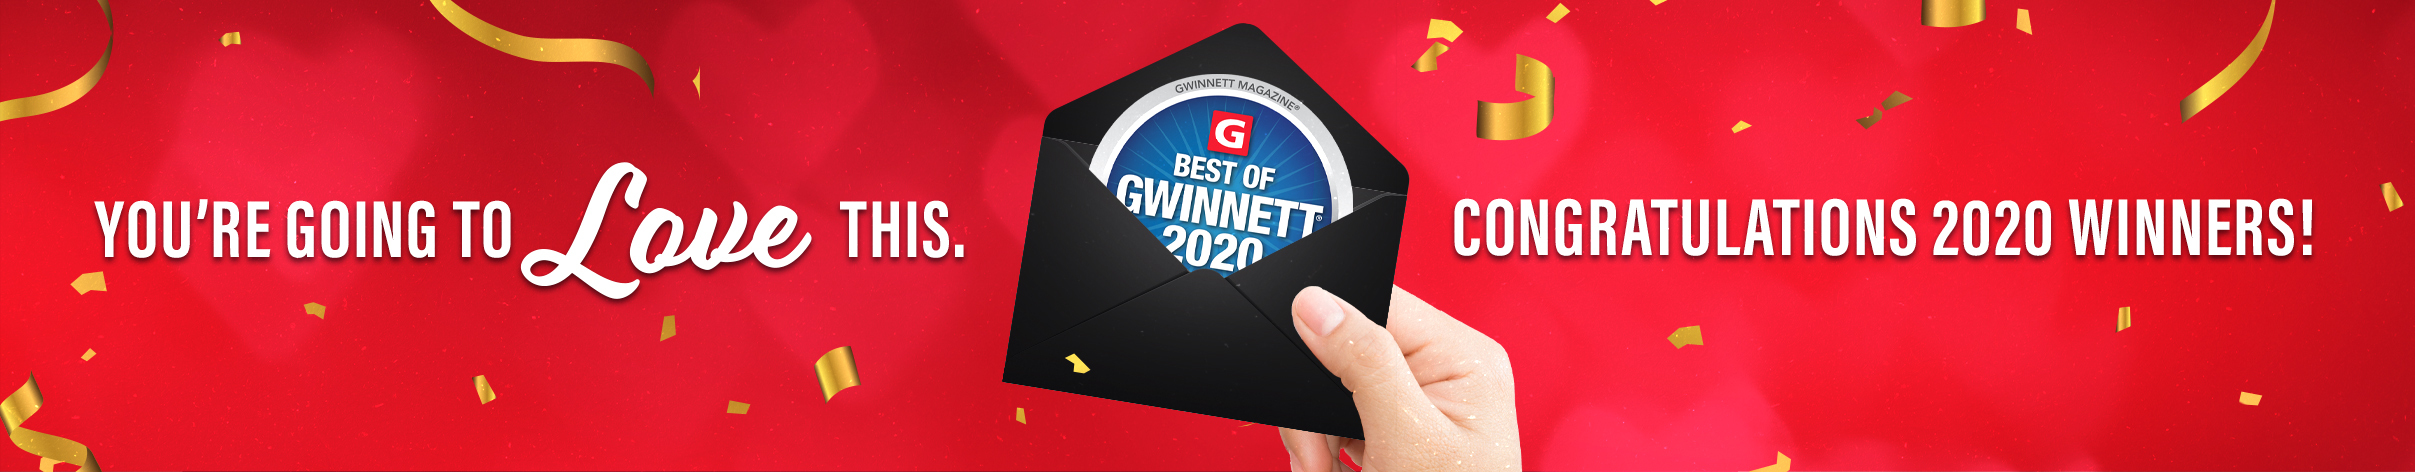 Best of Gwinnett Results